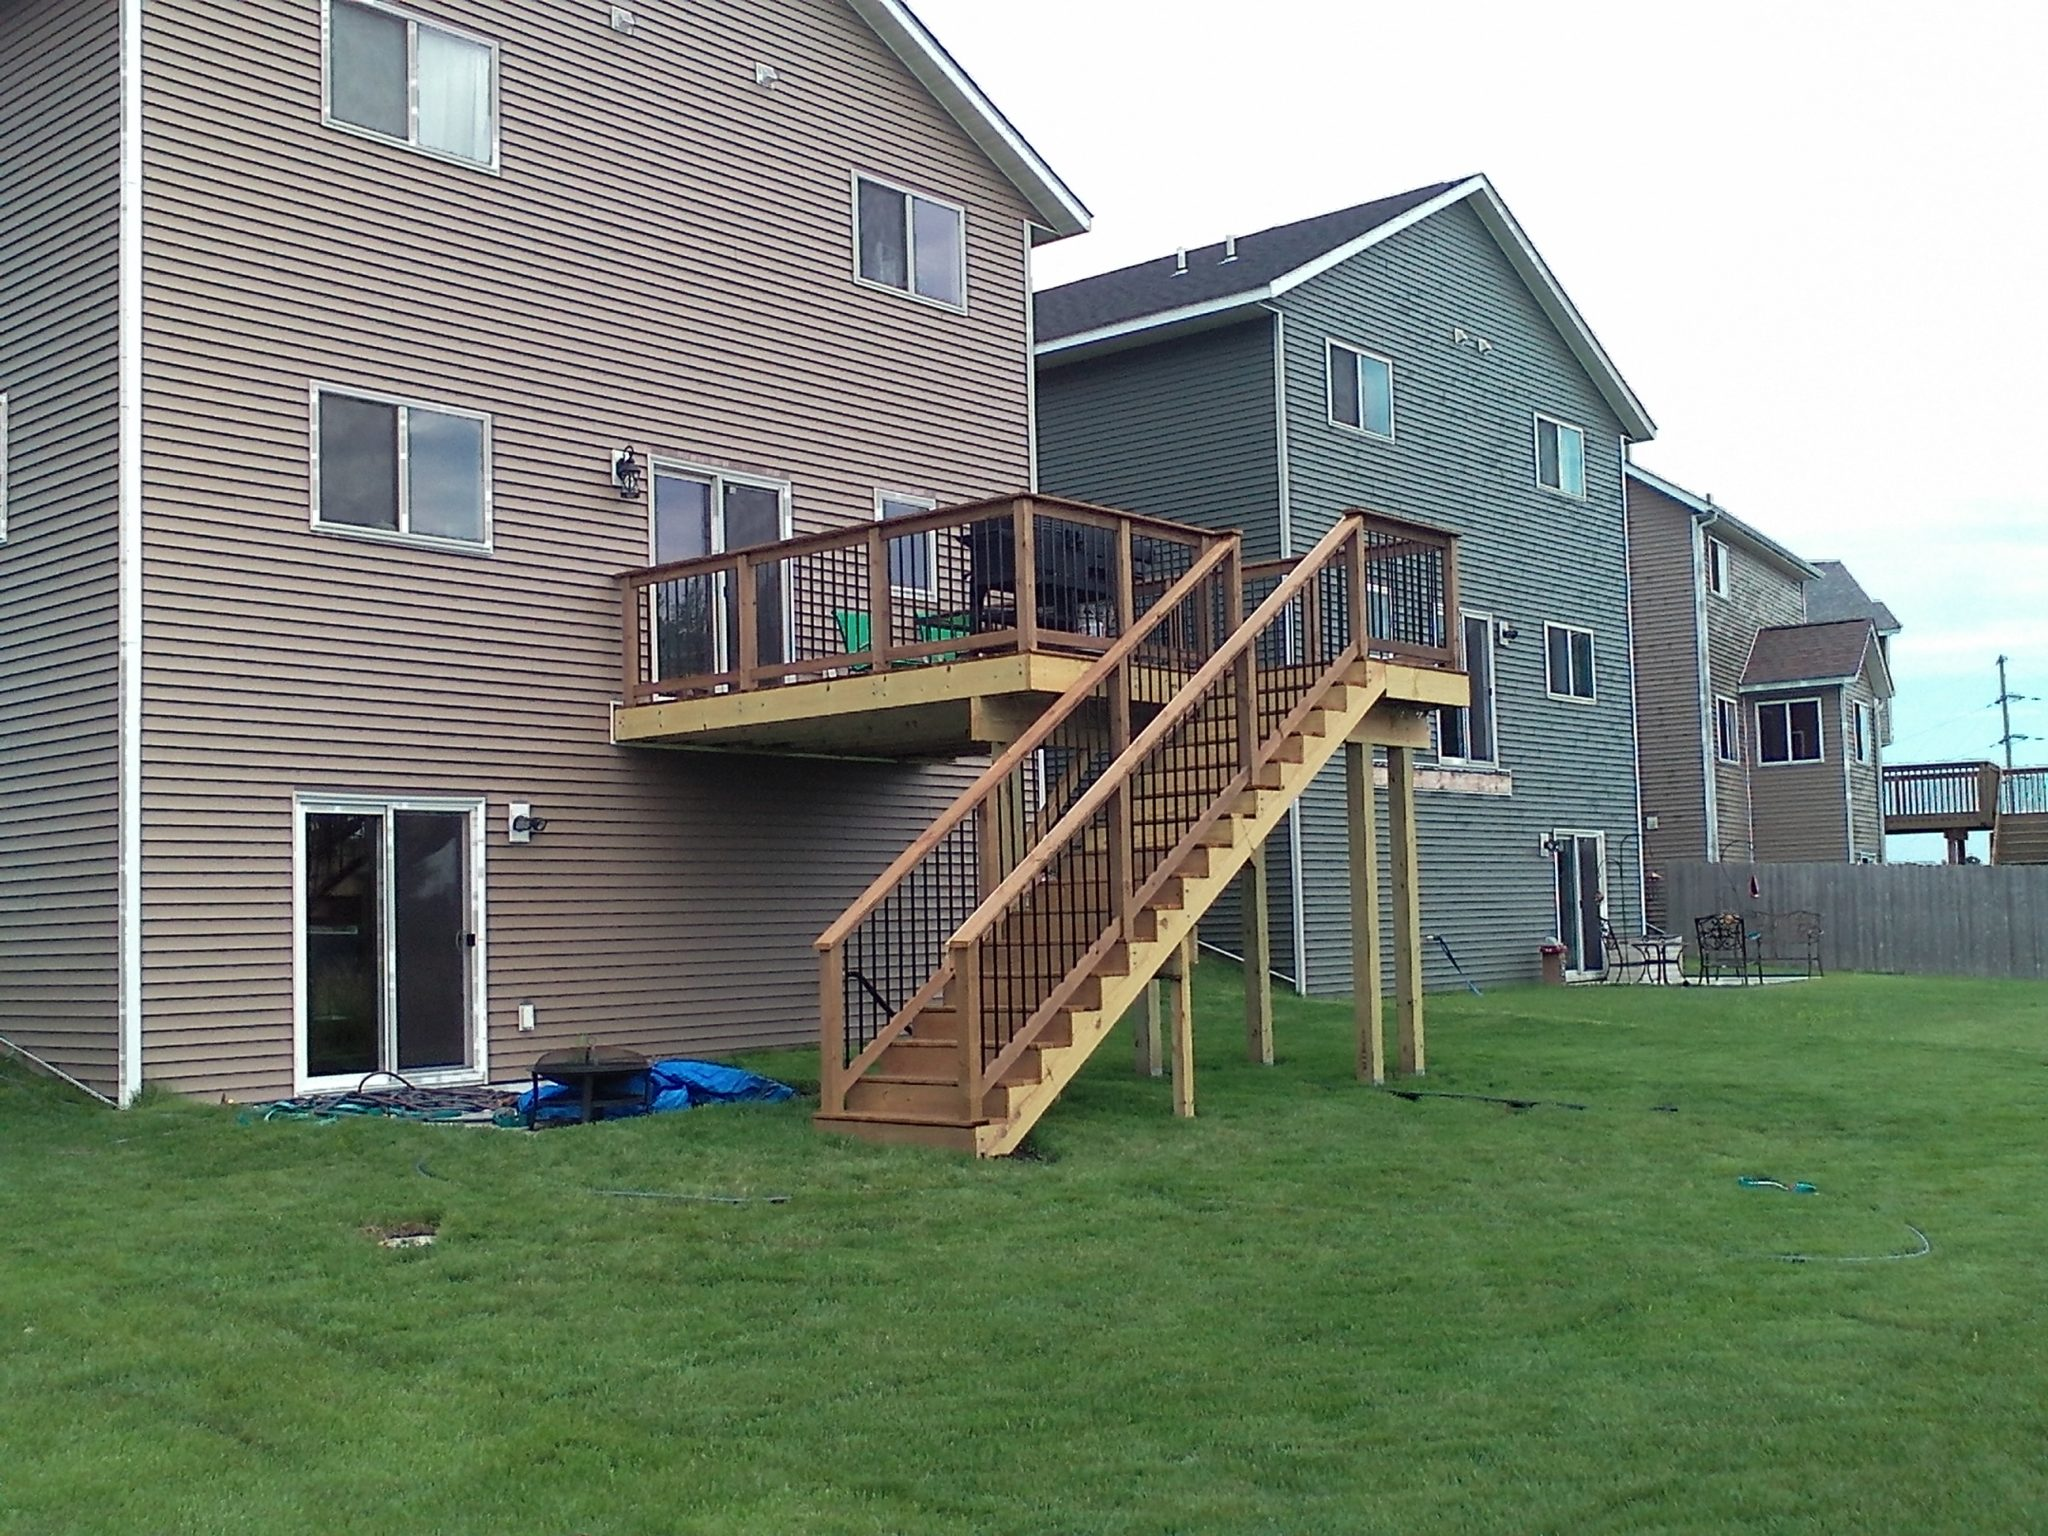 mankato-deck-and-railing-113446